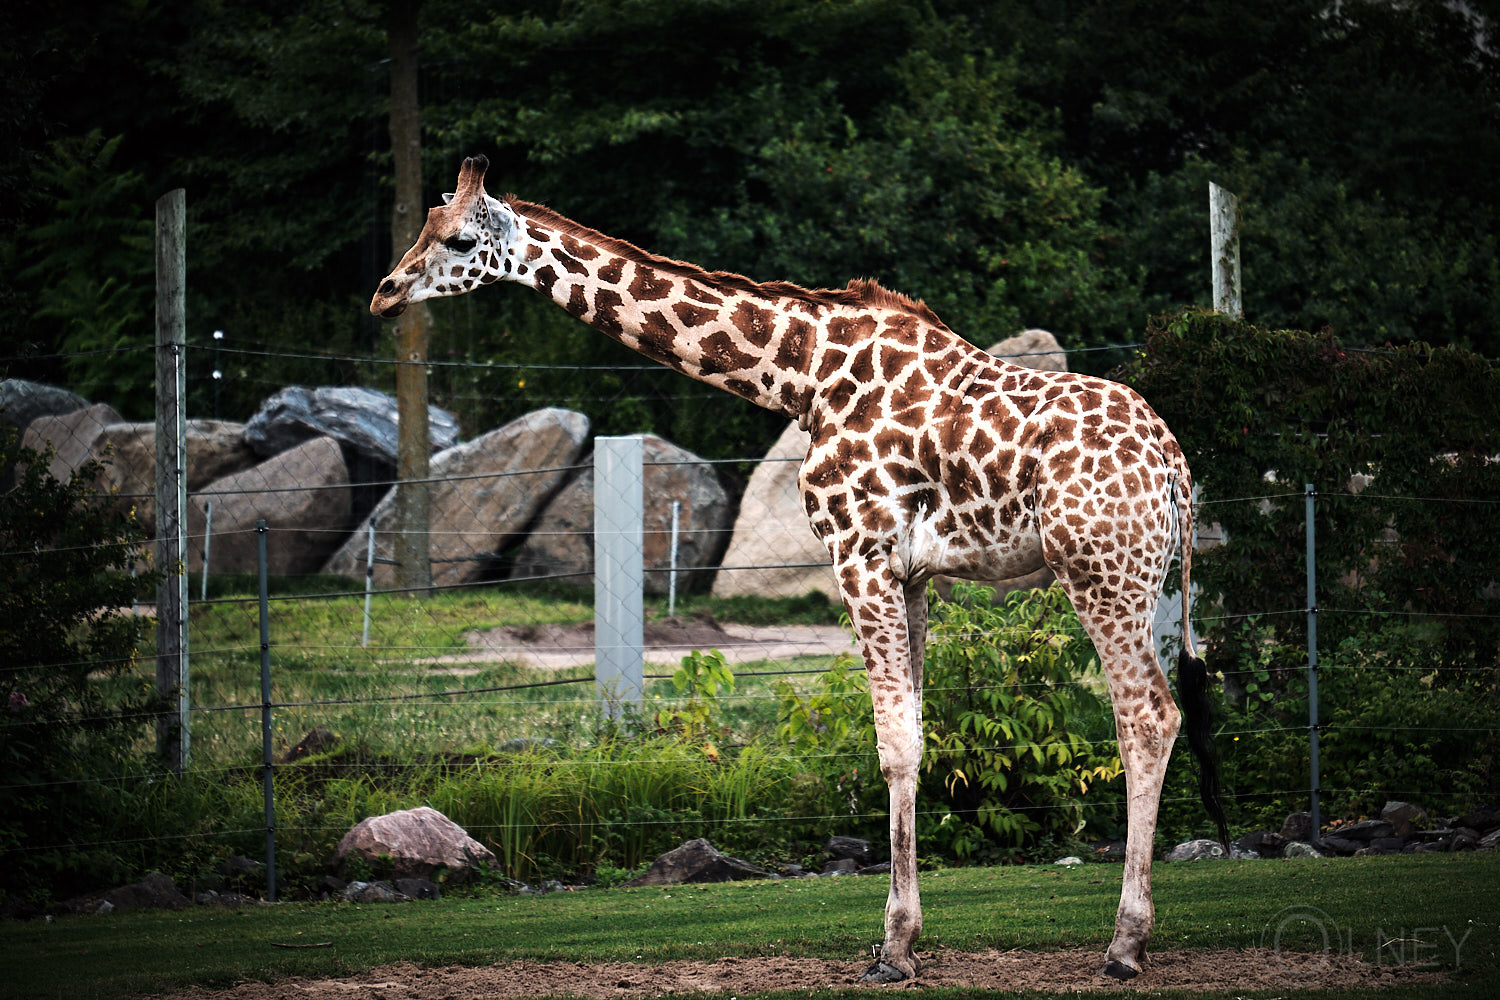 giraffe at granby zoo